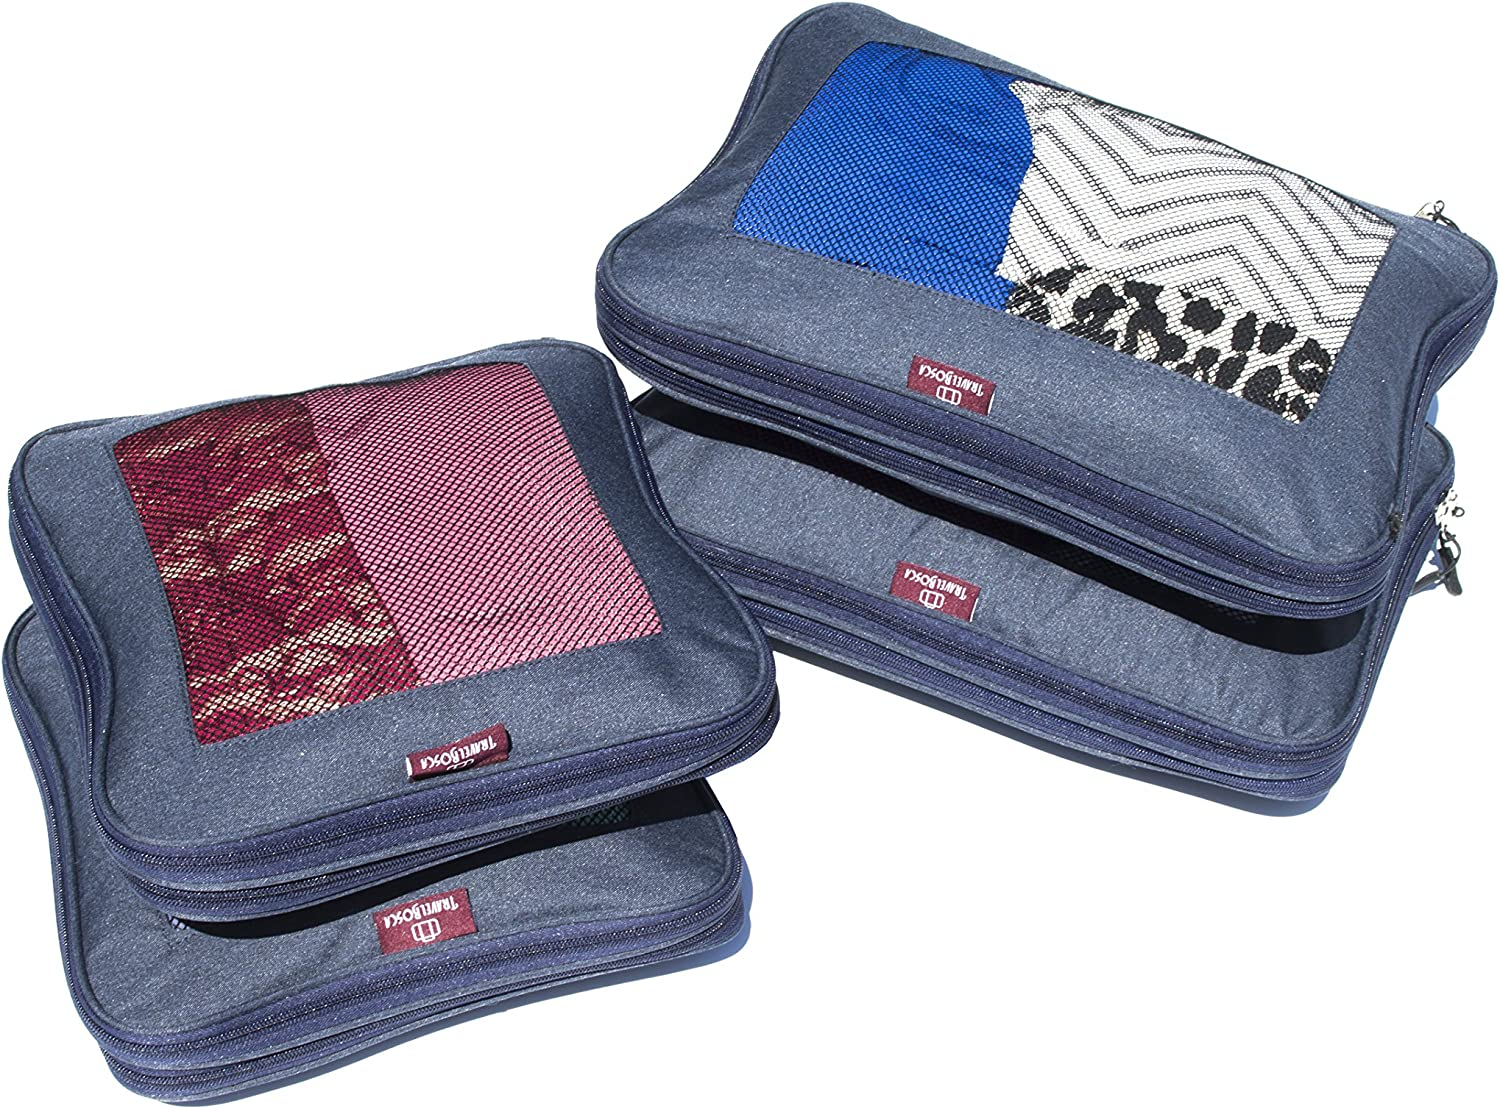 Compression Packing Cube Set By TravelBosca 2 Large 2 Medium Cubes 4 Piece Luggage Cubes for Organized Travel